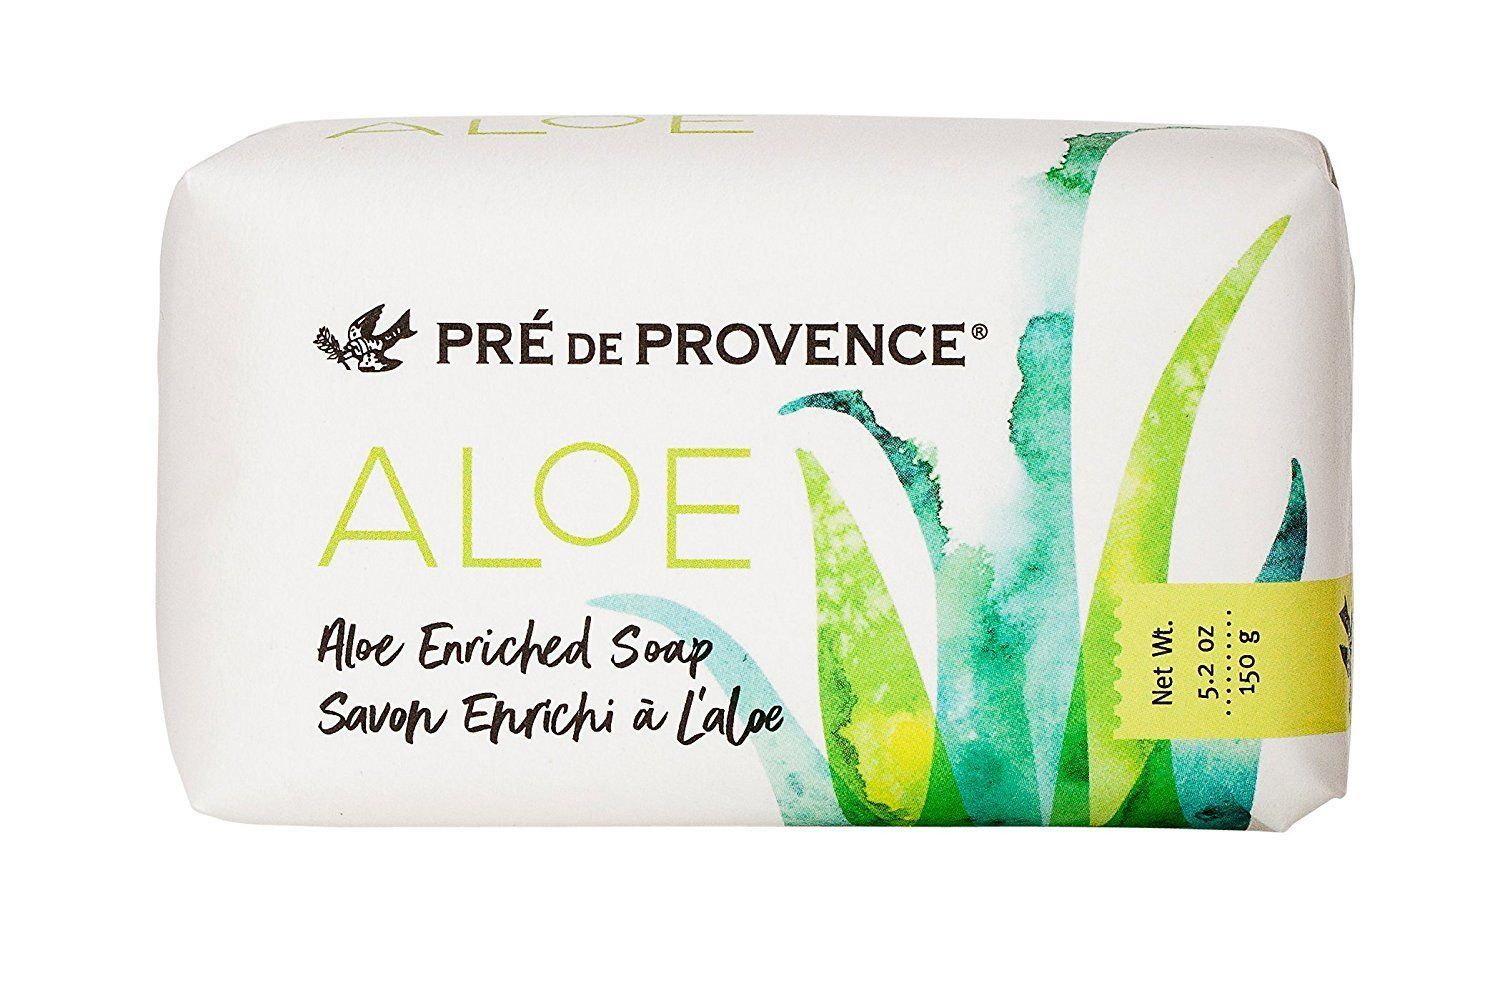 Pre De Provence French Bar Soap Aloe Enriched 150g Gram 5.2 Ounce Shea